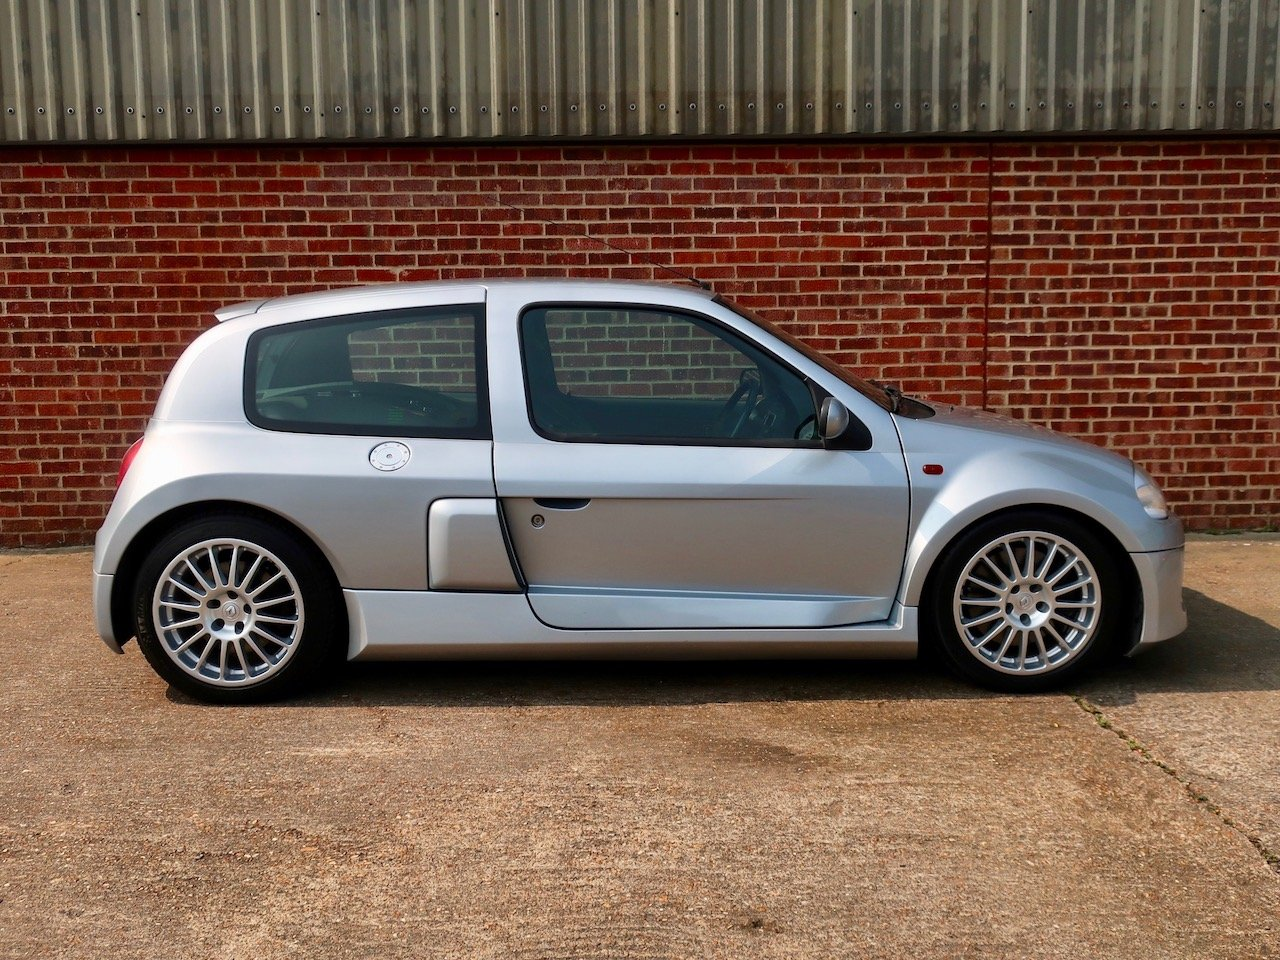 2002 Renault Clio V6  For Sale (picture 2 of 6)